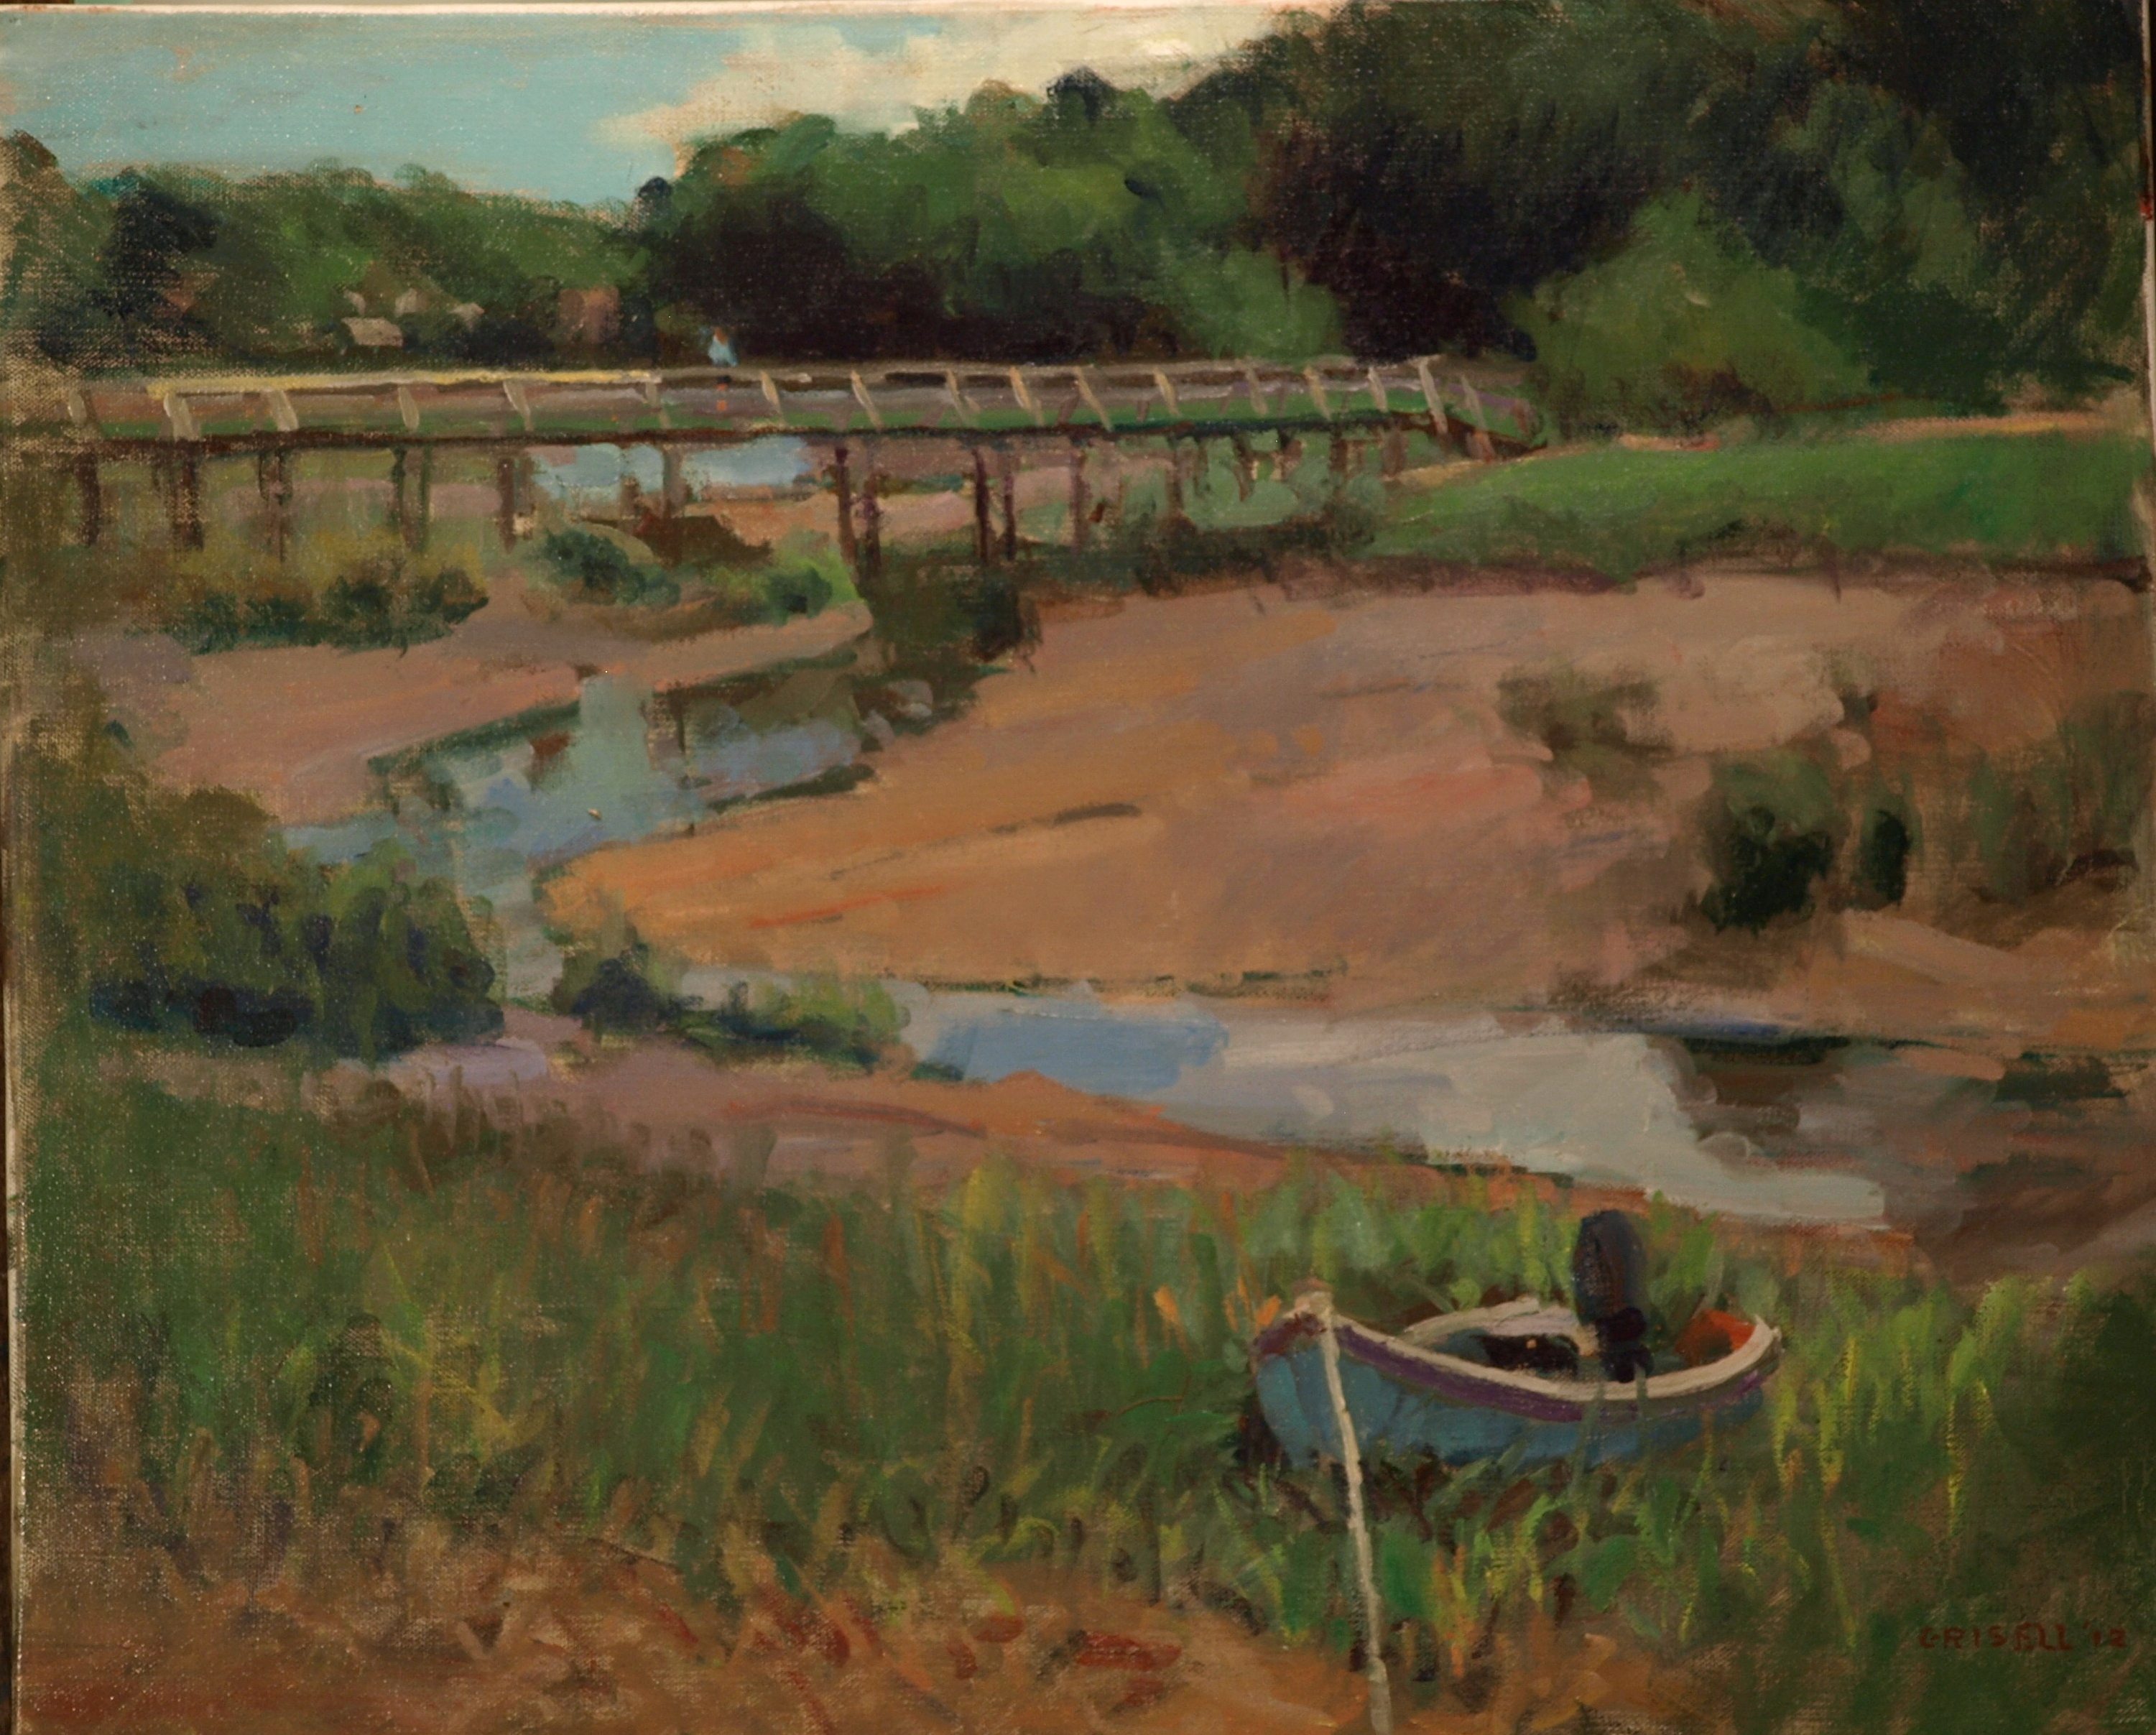 Uncle Tim's Bridge, Oil on Canvas, 20 x 24 Inches, by Susan Grisell, $650